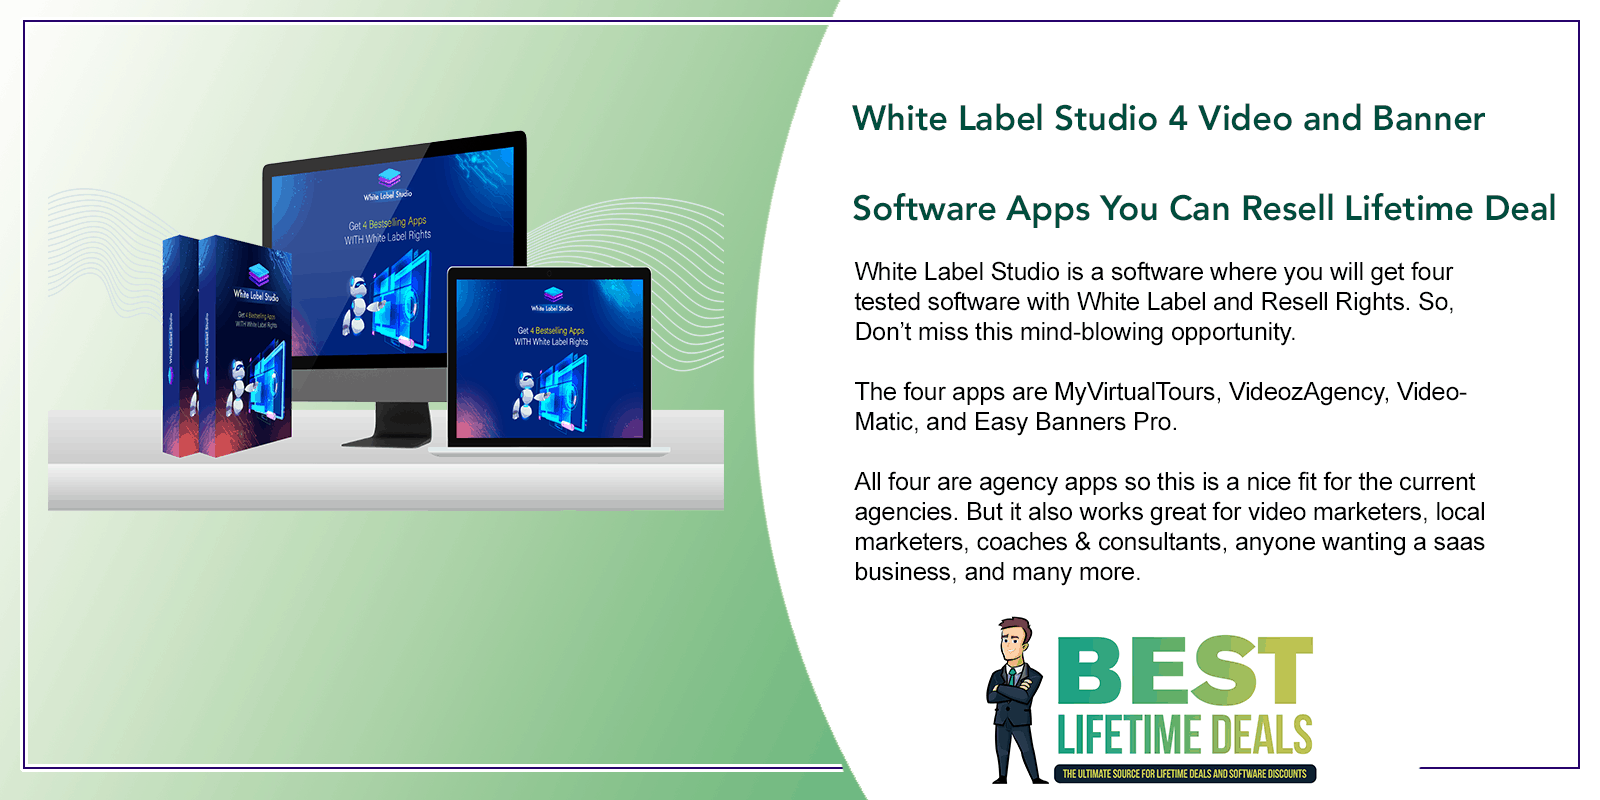 White Label Studio 4 Video and Banner Software Apps You Can Resell Featured Image